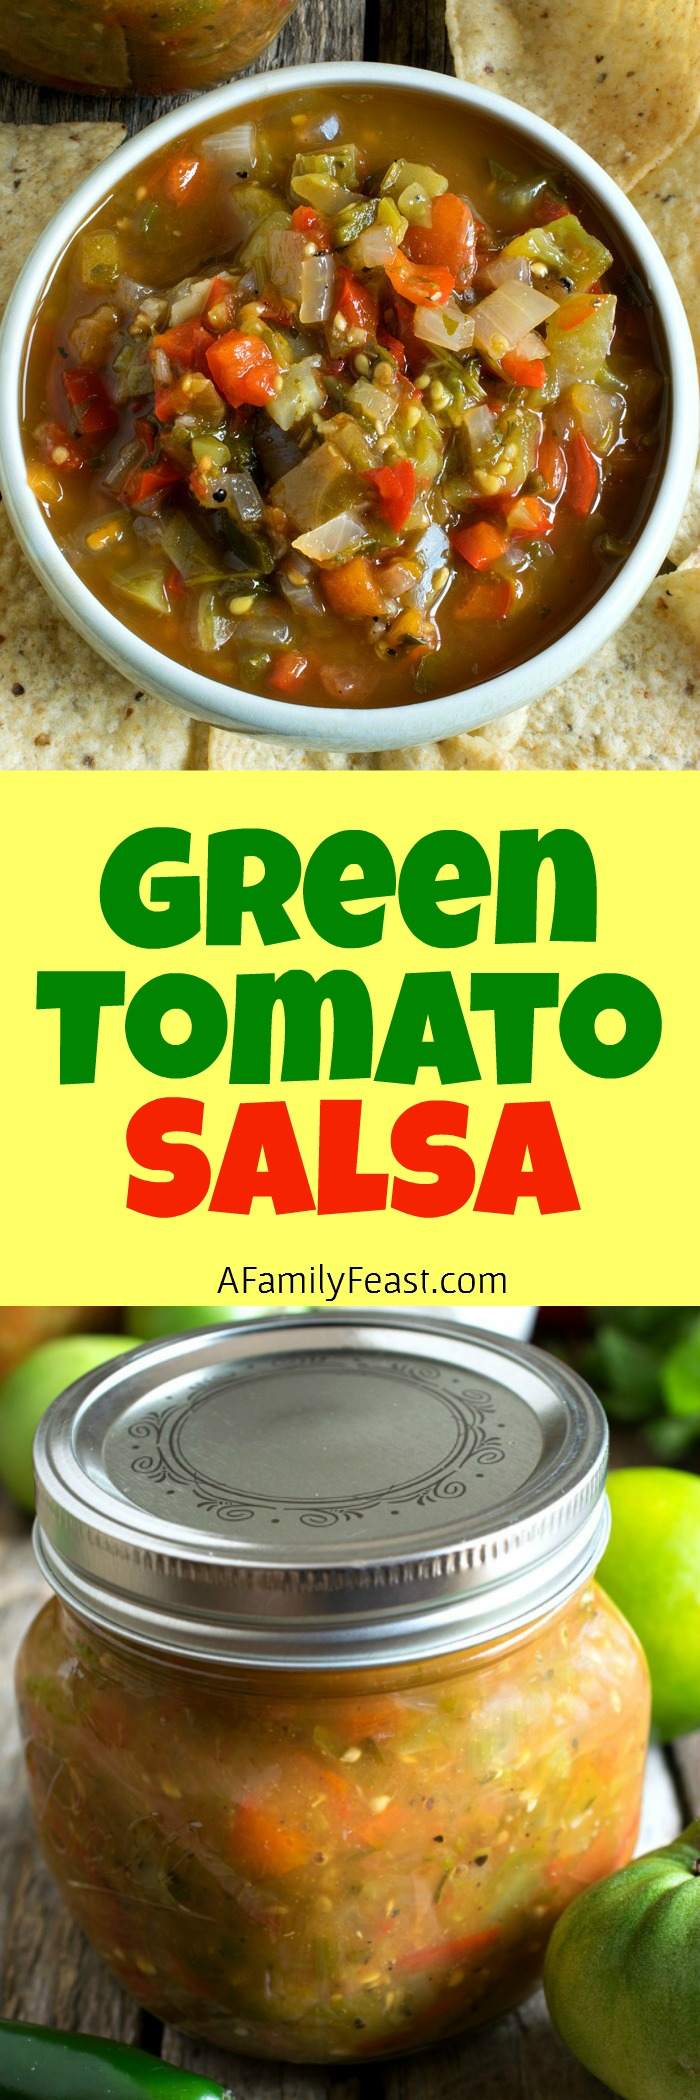 Green Tomato Salsa - A fantastic, zesty salsa perfect for using up end-of-season, green garden tomatoes.